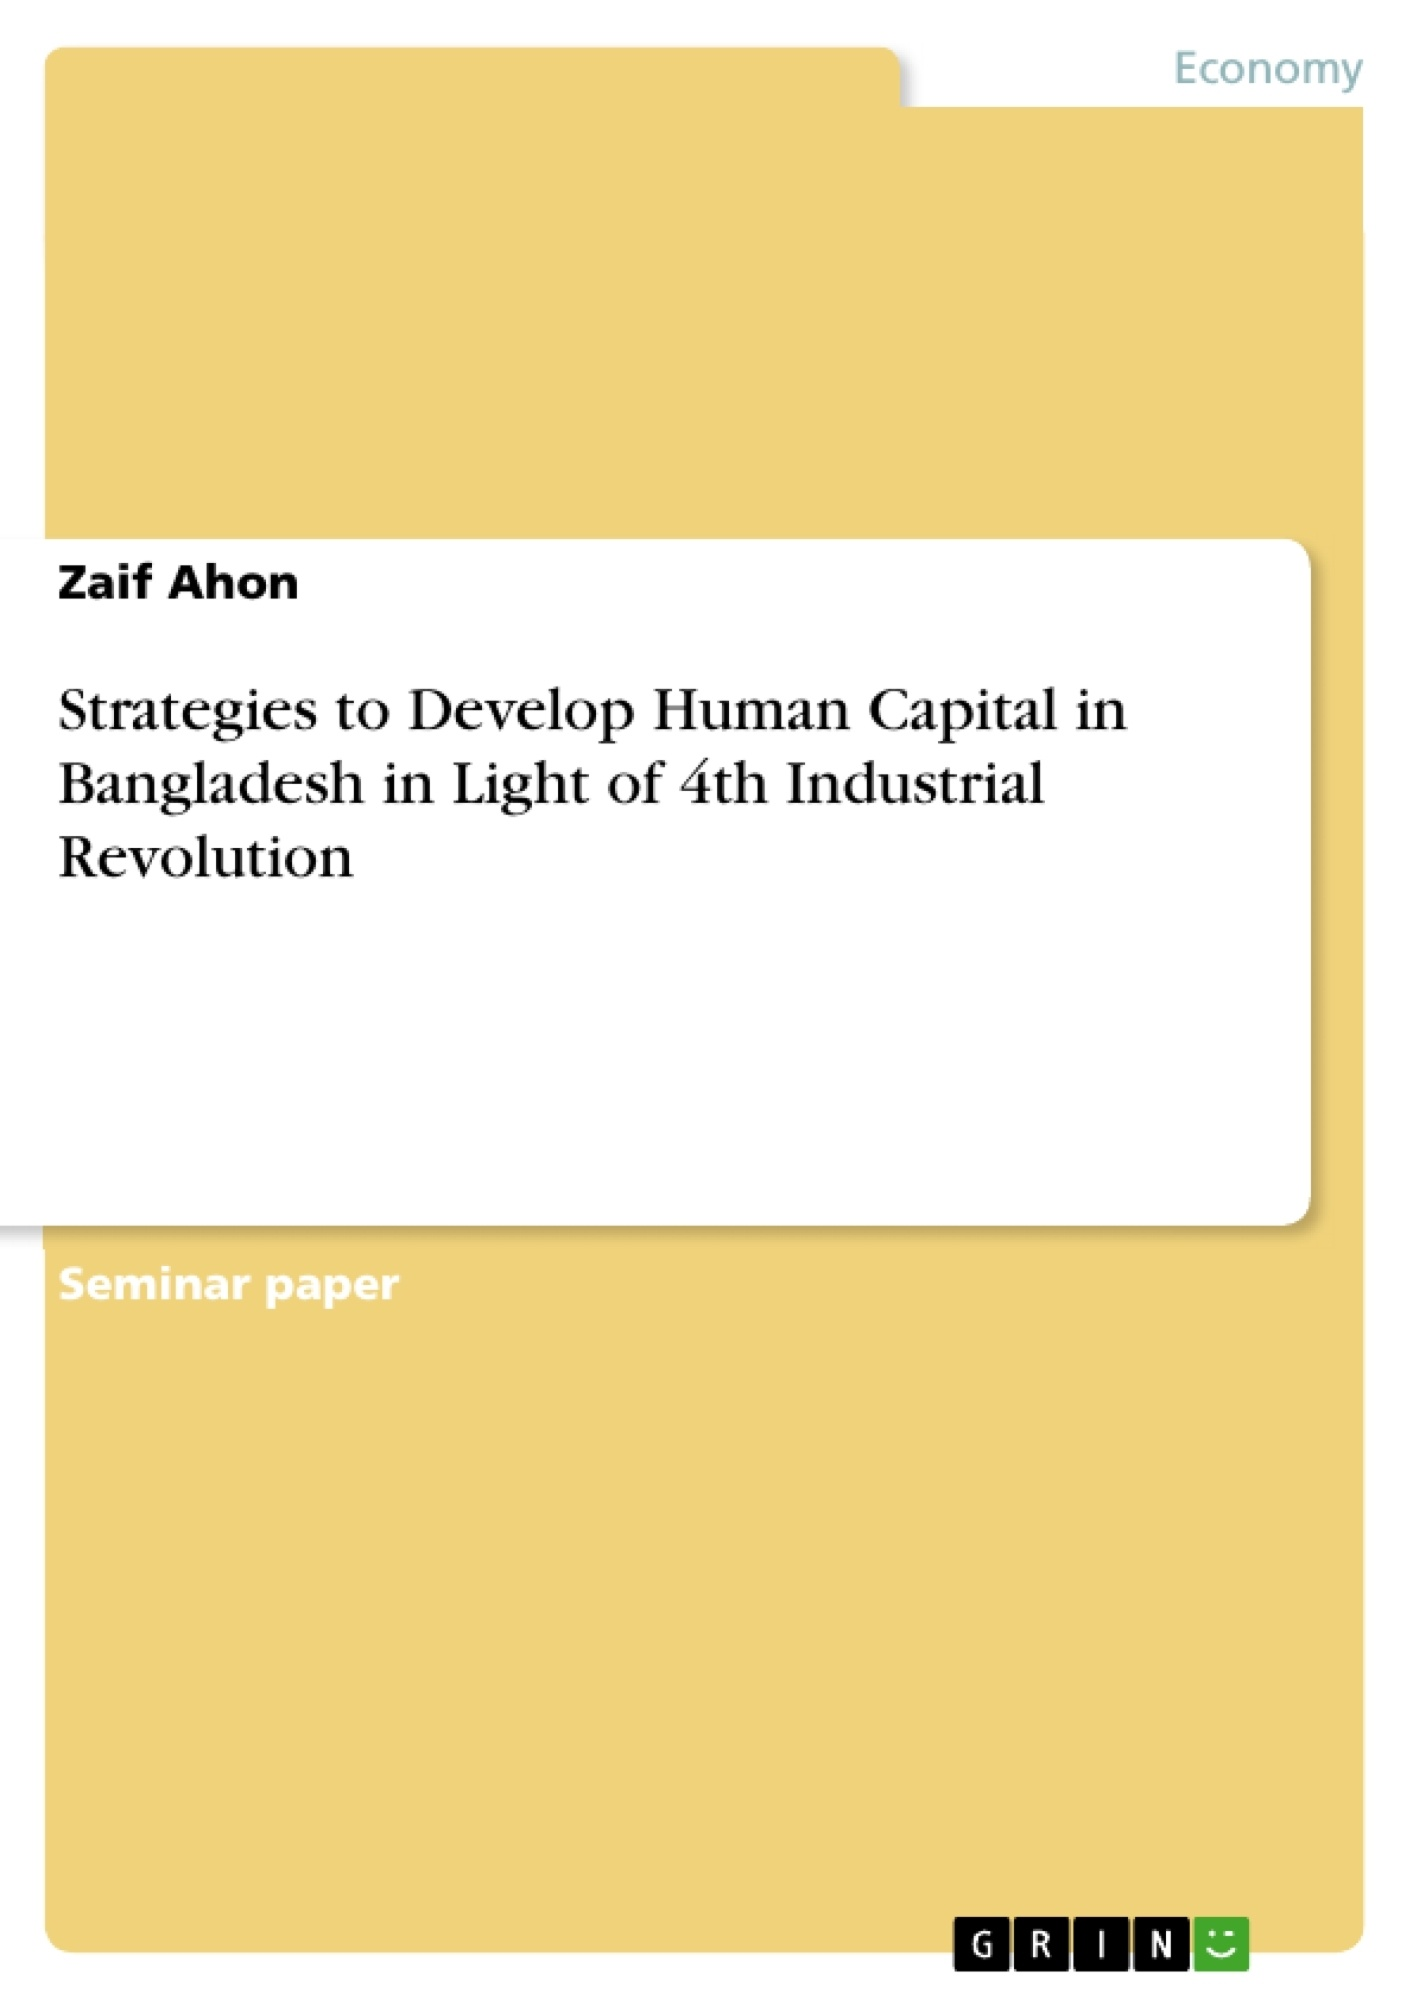 Title: Strategies to Develop Human Capital in Bangladesh in Light of 4th Industrial Revolution